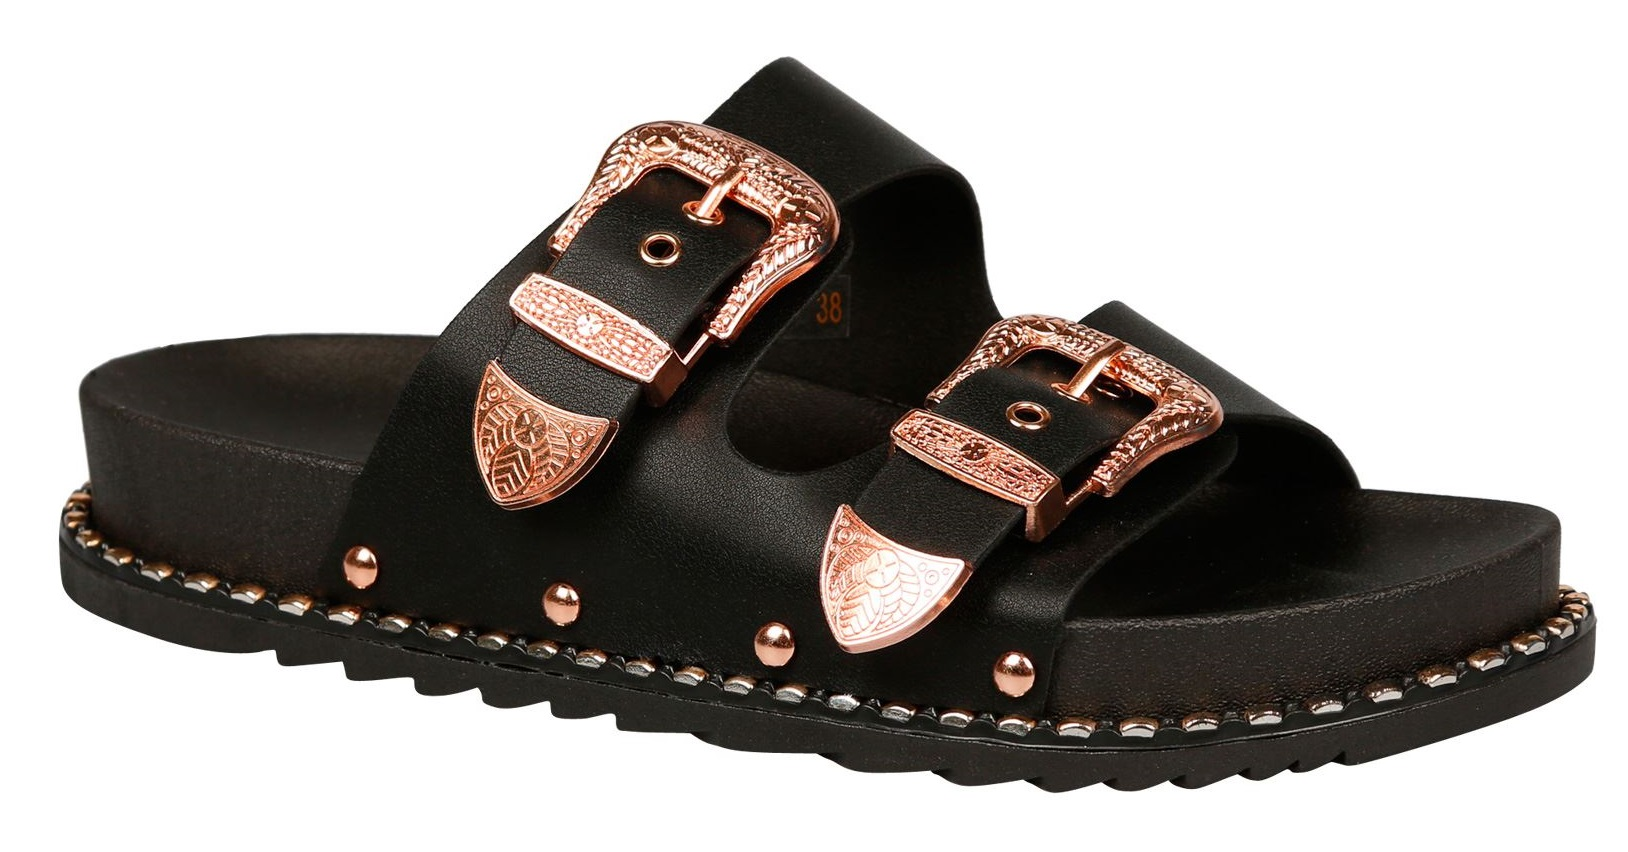 LADIES-WOMENS-FLAT-SLIDERS-STUDDED-SLIP-ON-MULE-SUMMER-HOILDAY-SANDALS-SHOES-SZ thumbnail 14